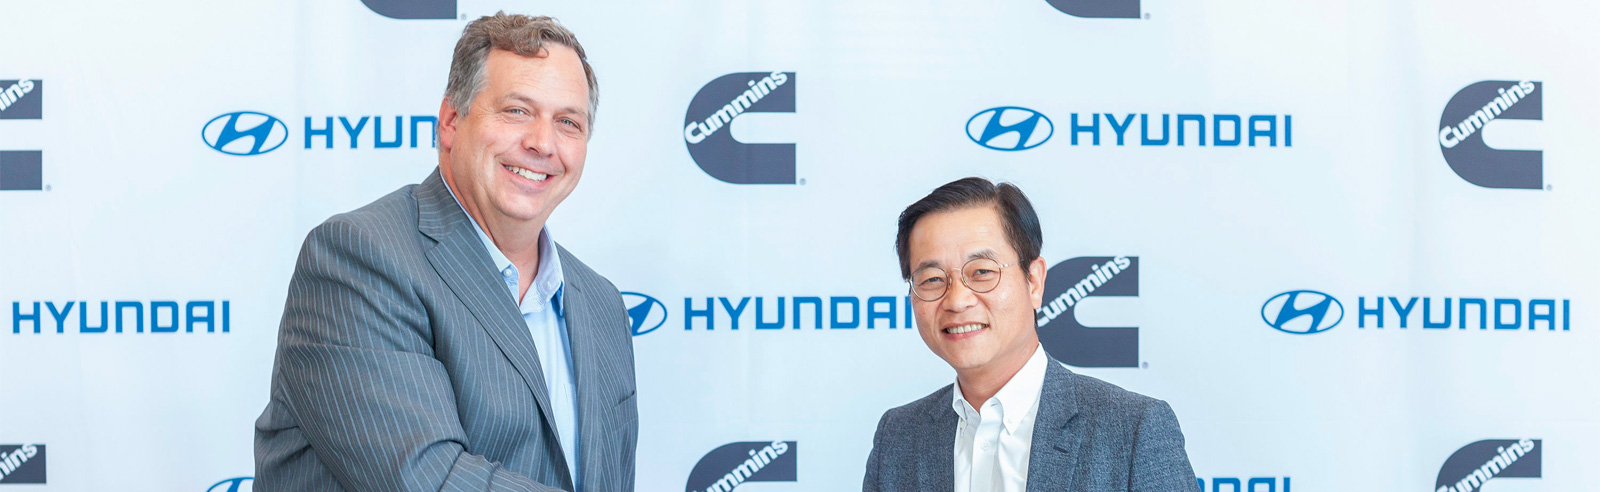 Hyundai and Cummins sing a MOU for collaboration on hydrogen fuel cell technology